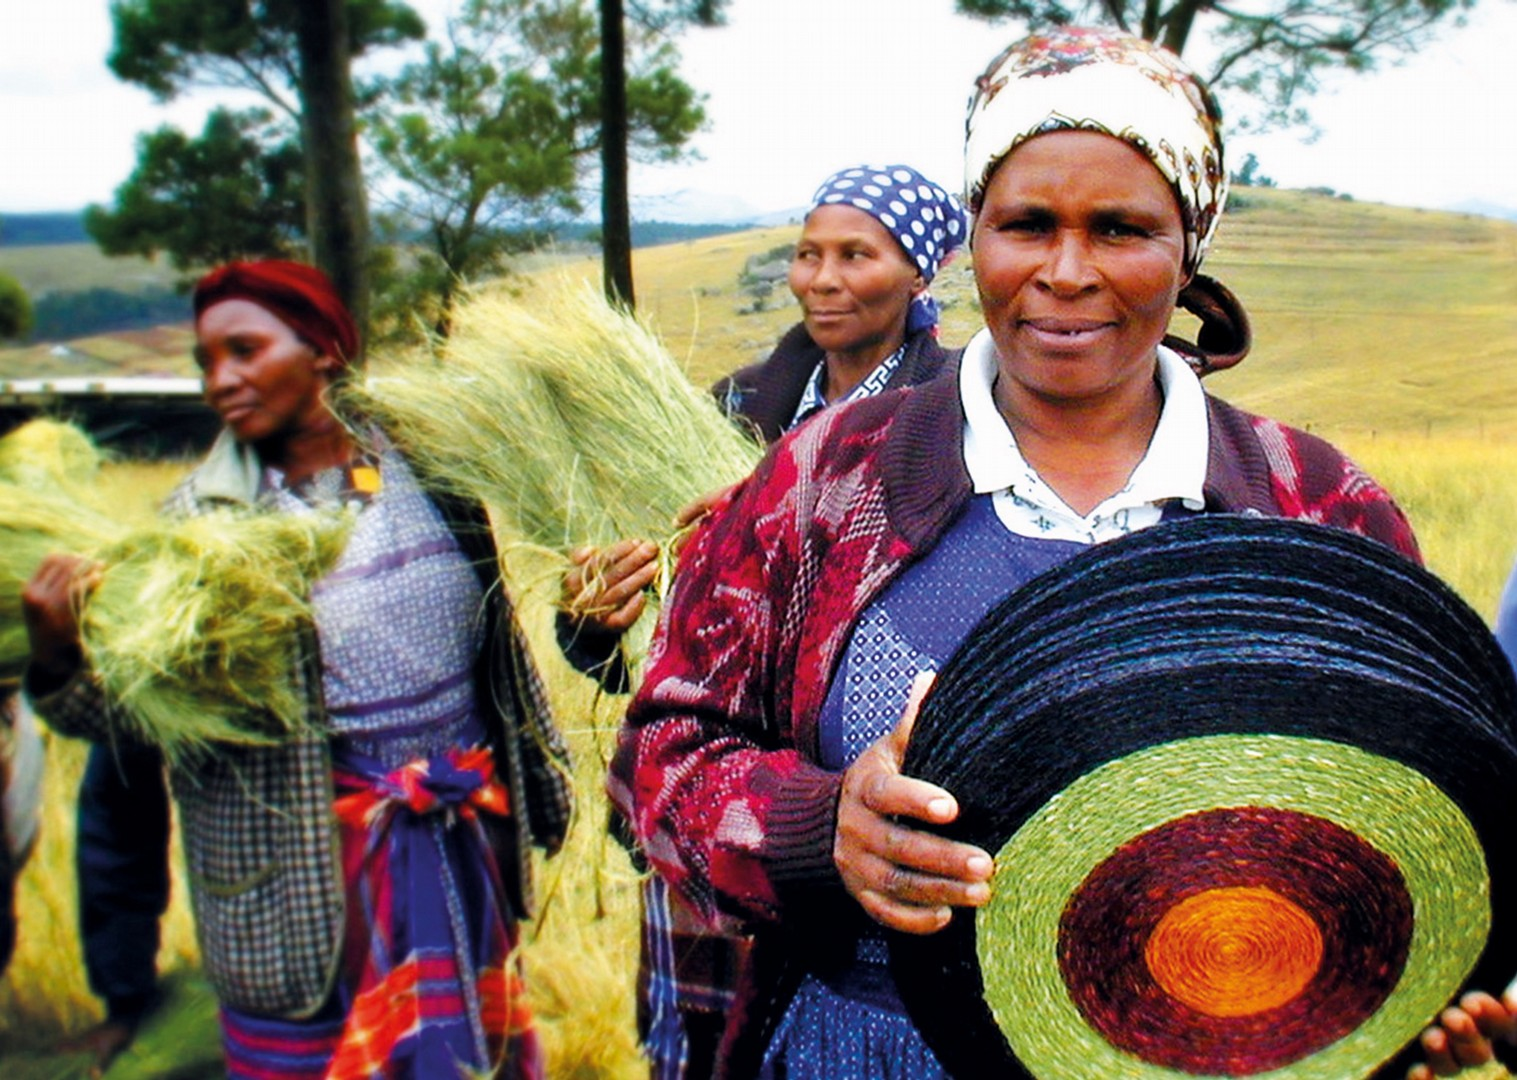 Eswatini 4.jpg - Eswatini (Swaziland) - Meet the People Tours